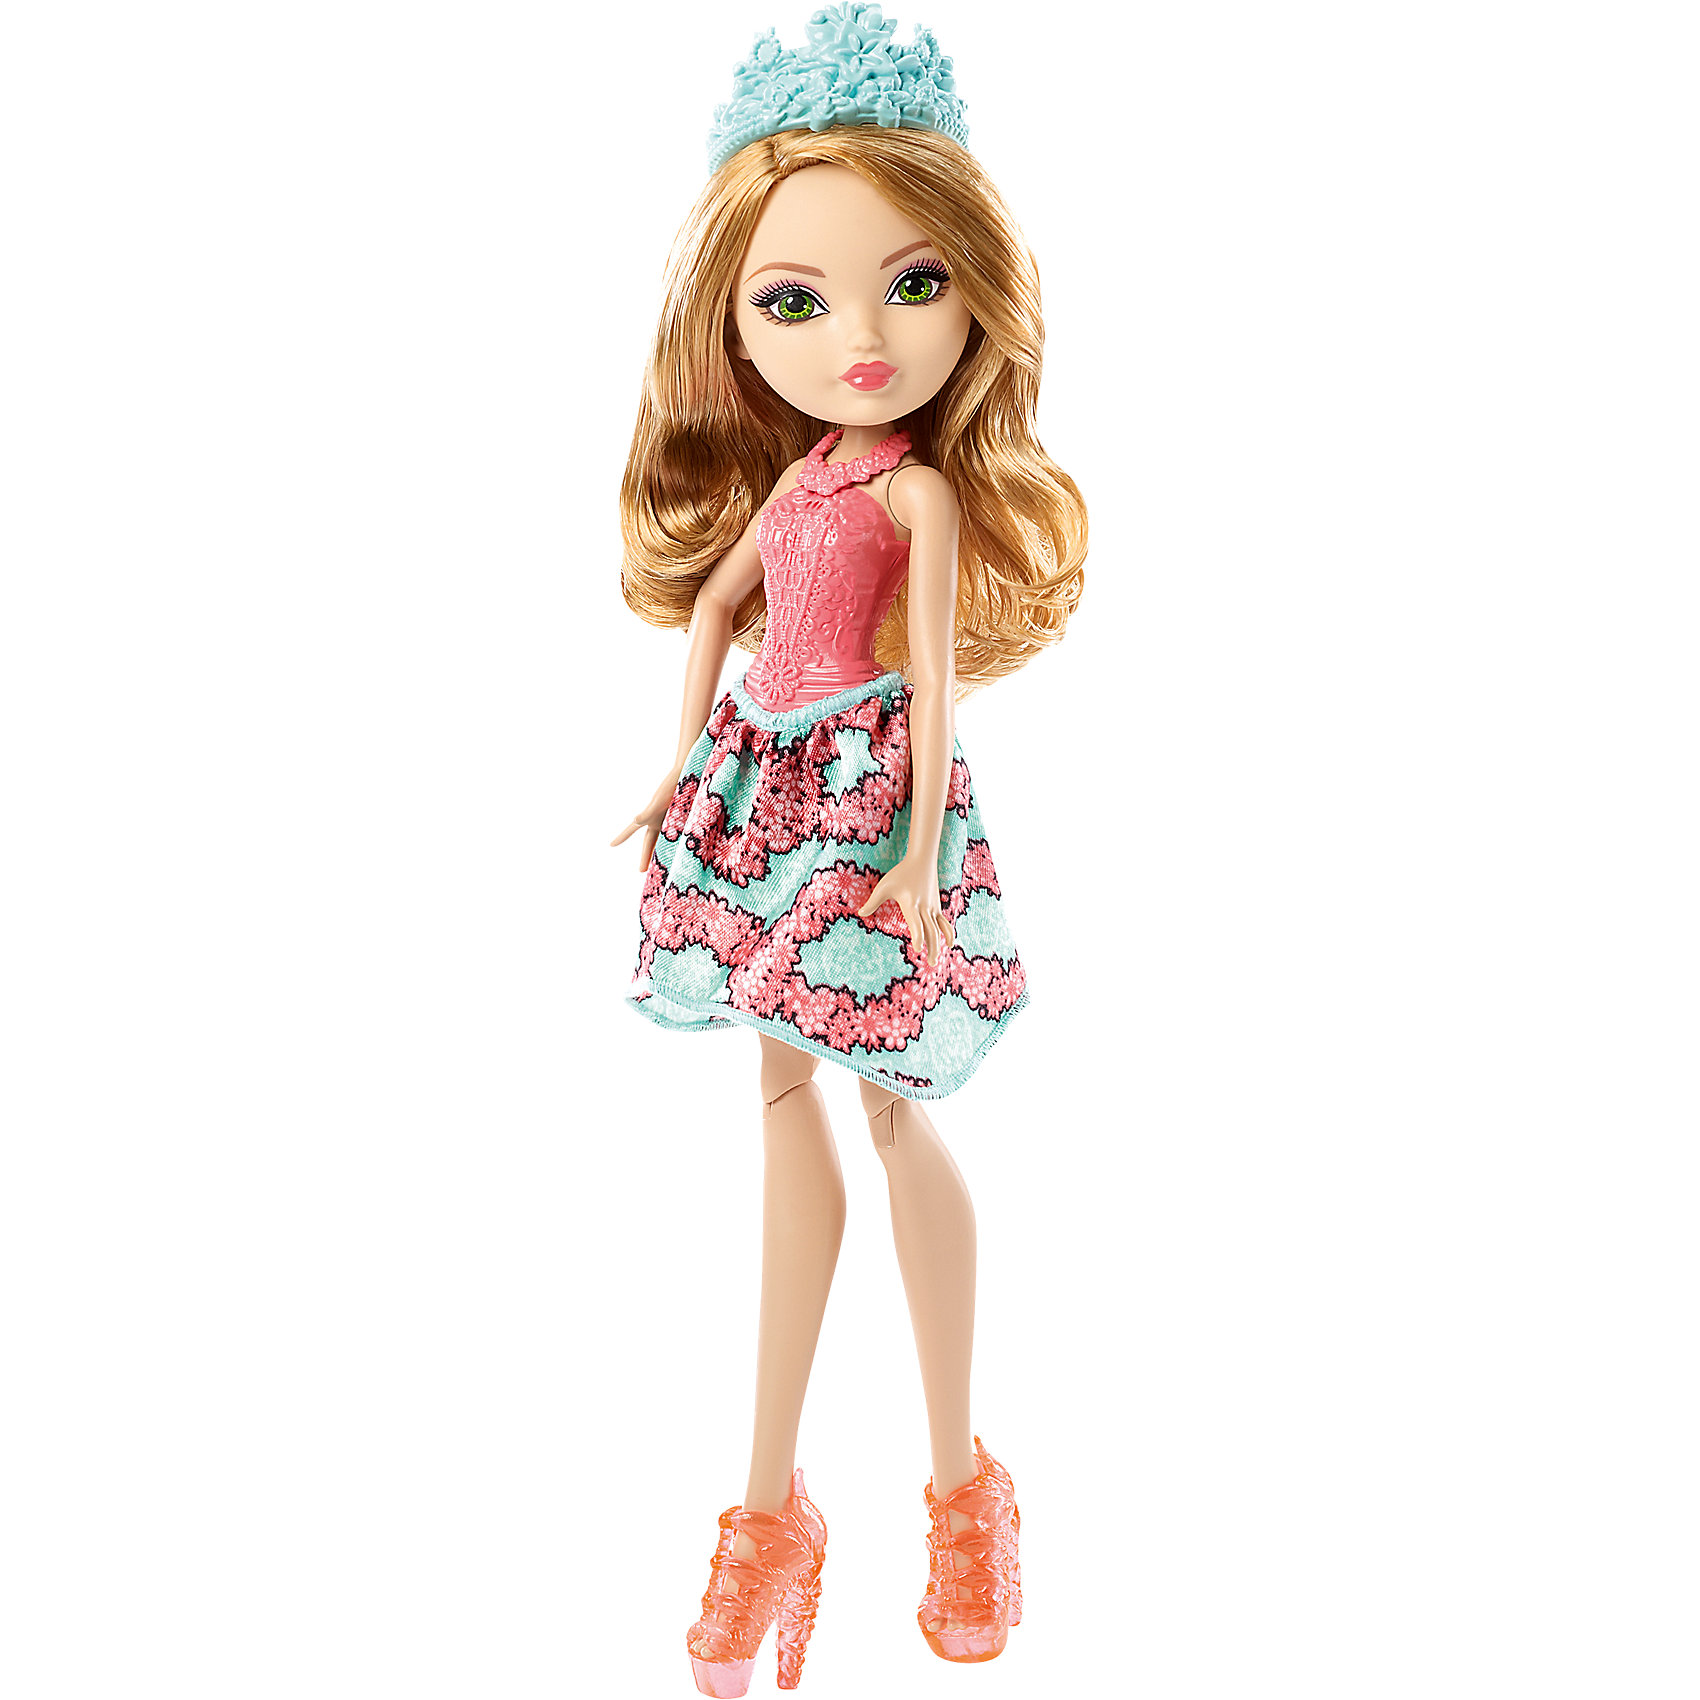 Mattel Кукла Эшлин Элла,  Ever After High ever after high кукла эшлин элла